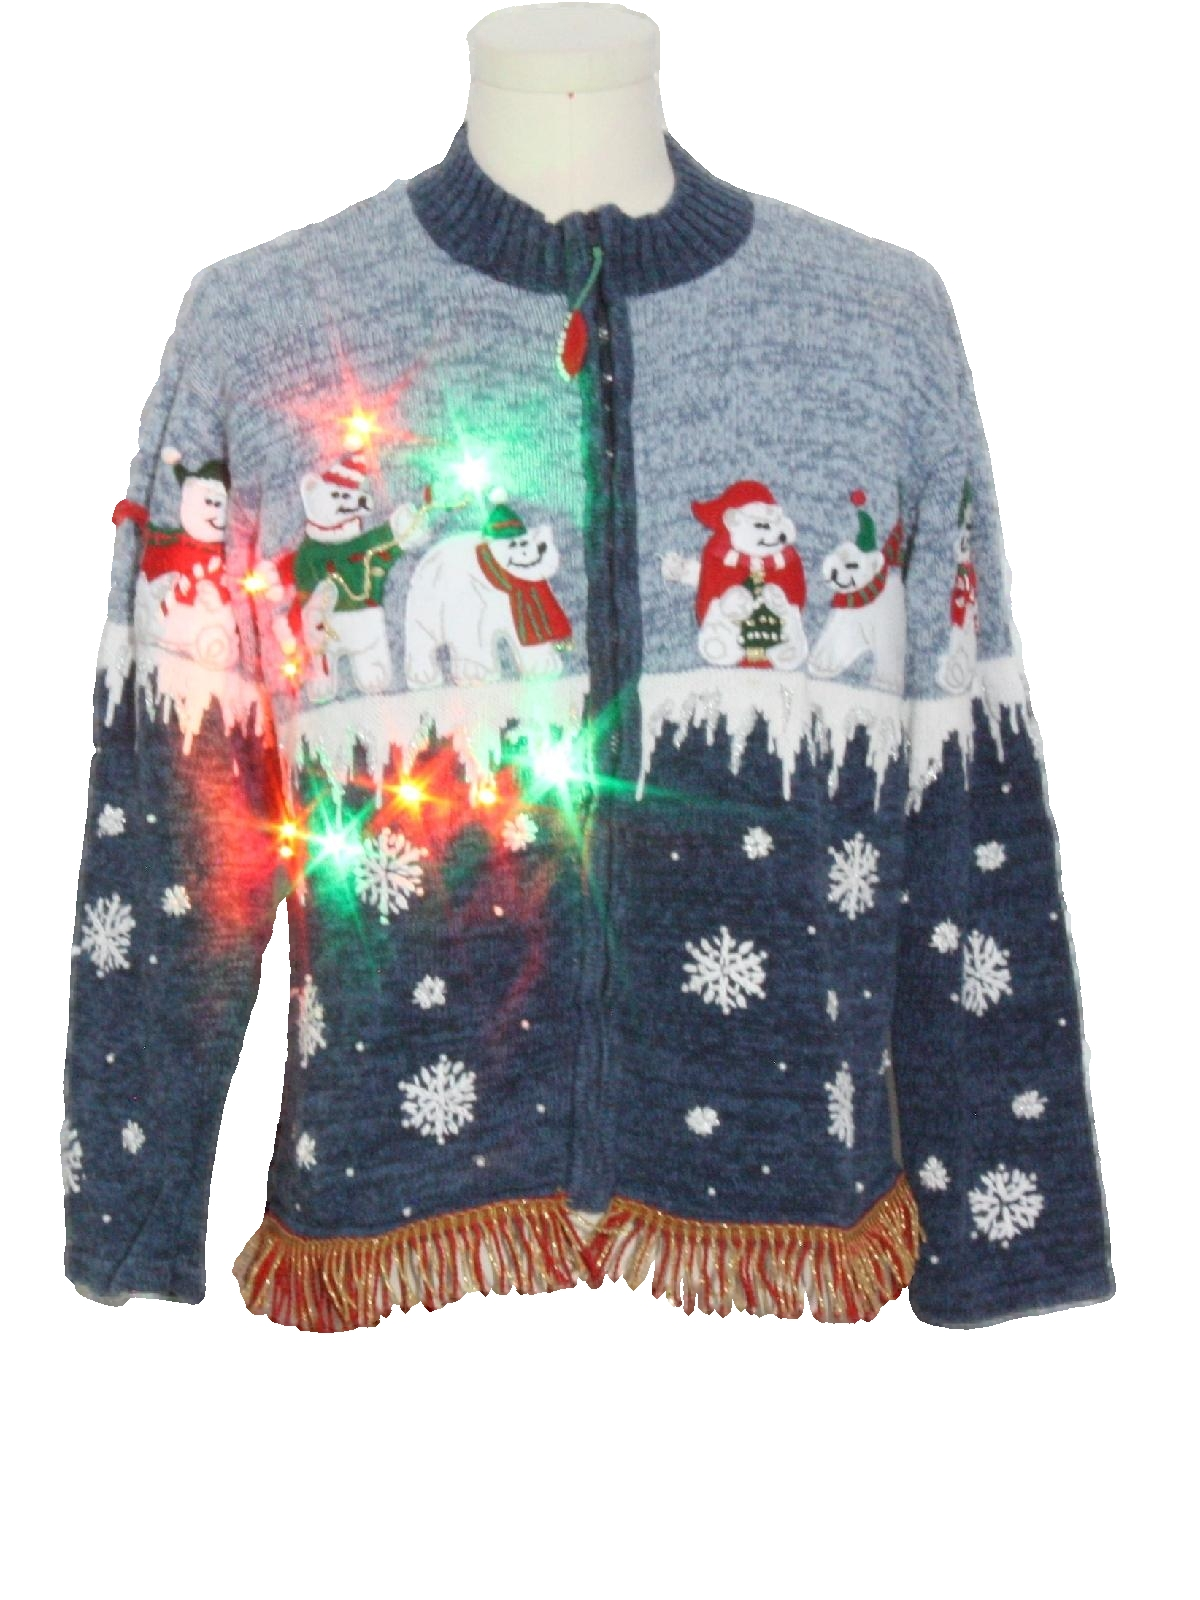 Blue And White Christmas Sweater.Tiara International Womens Hand Embellished Multicolor Lightup Ugly Christmas Sweater